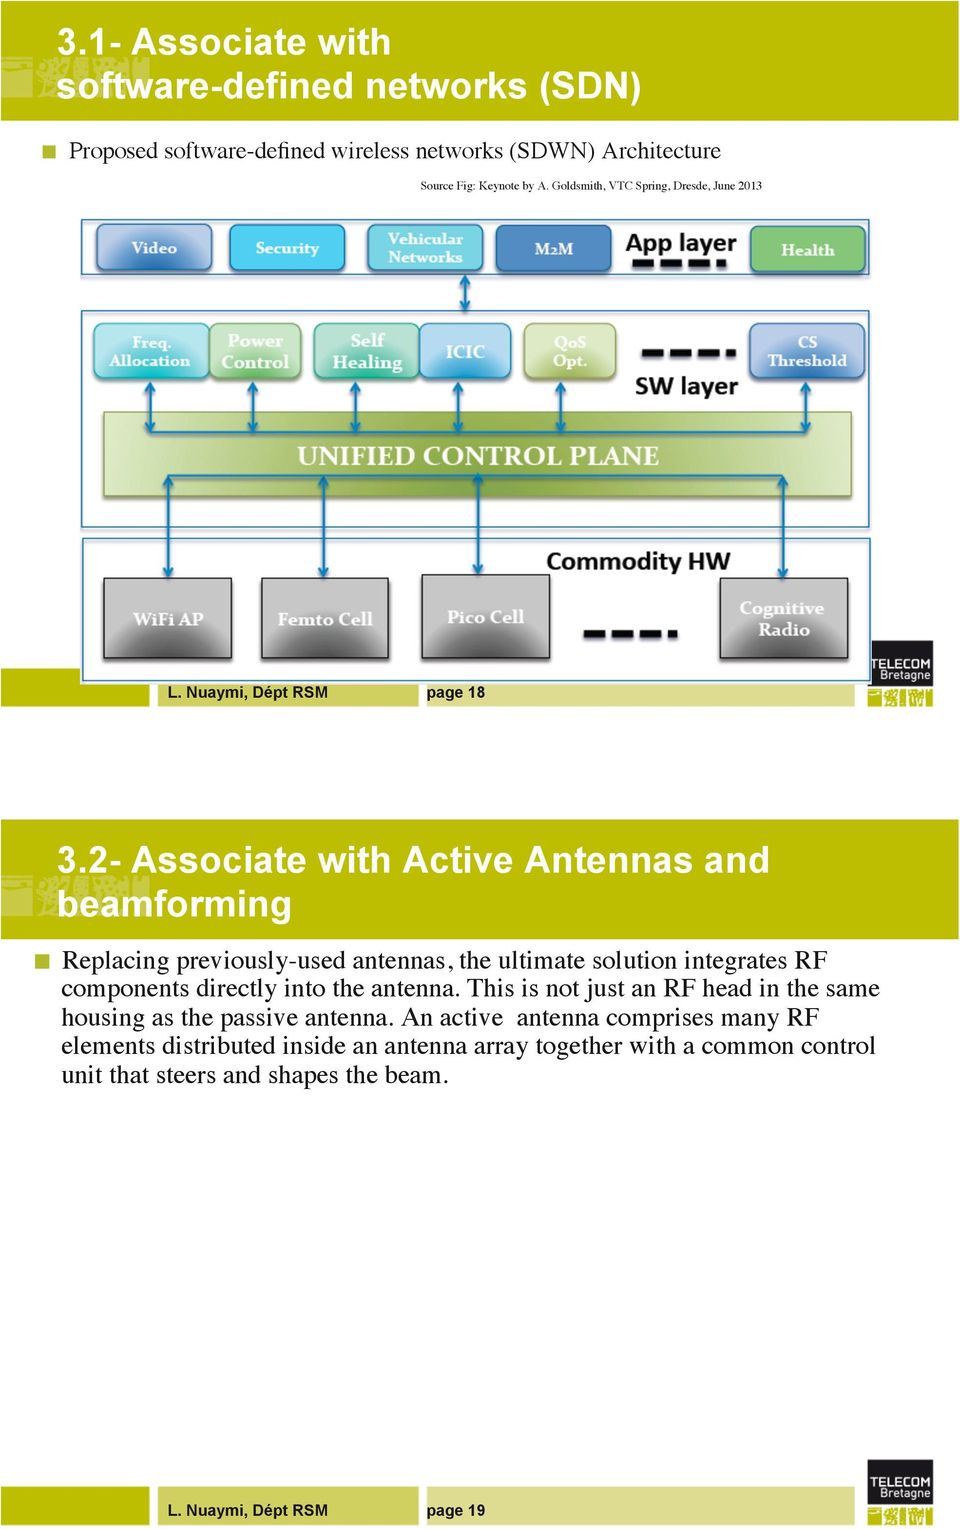 2- Associate with Active Antennas and beamforming Replacing previously-used antennas, the ultimate solution integrates RF components directly